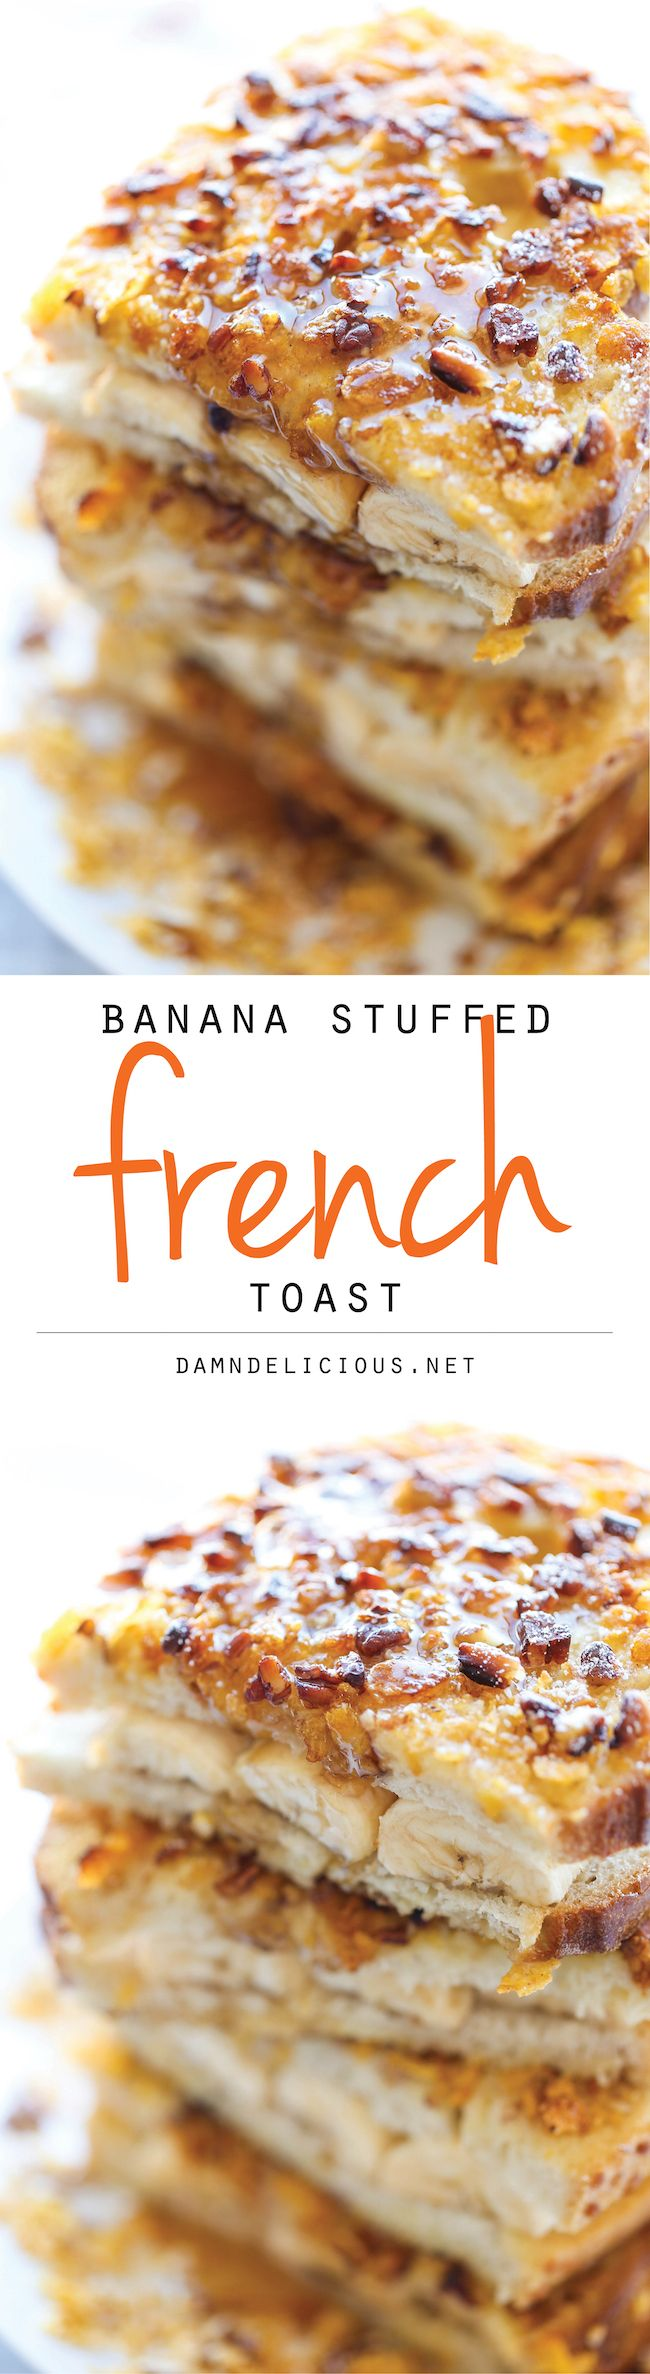 ... Toast on Pinterest | French toast, Baked french toast and French toast